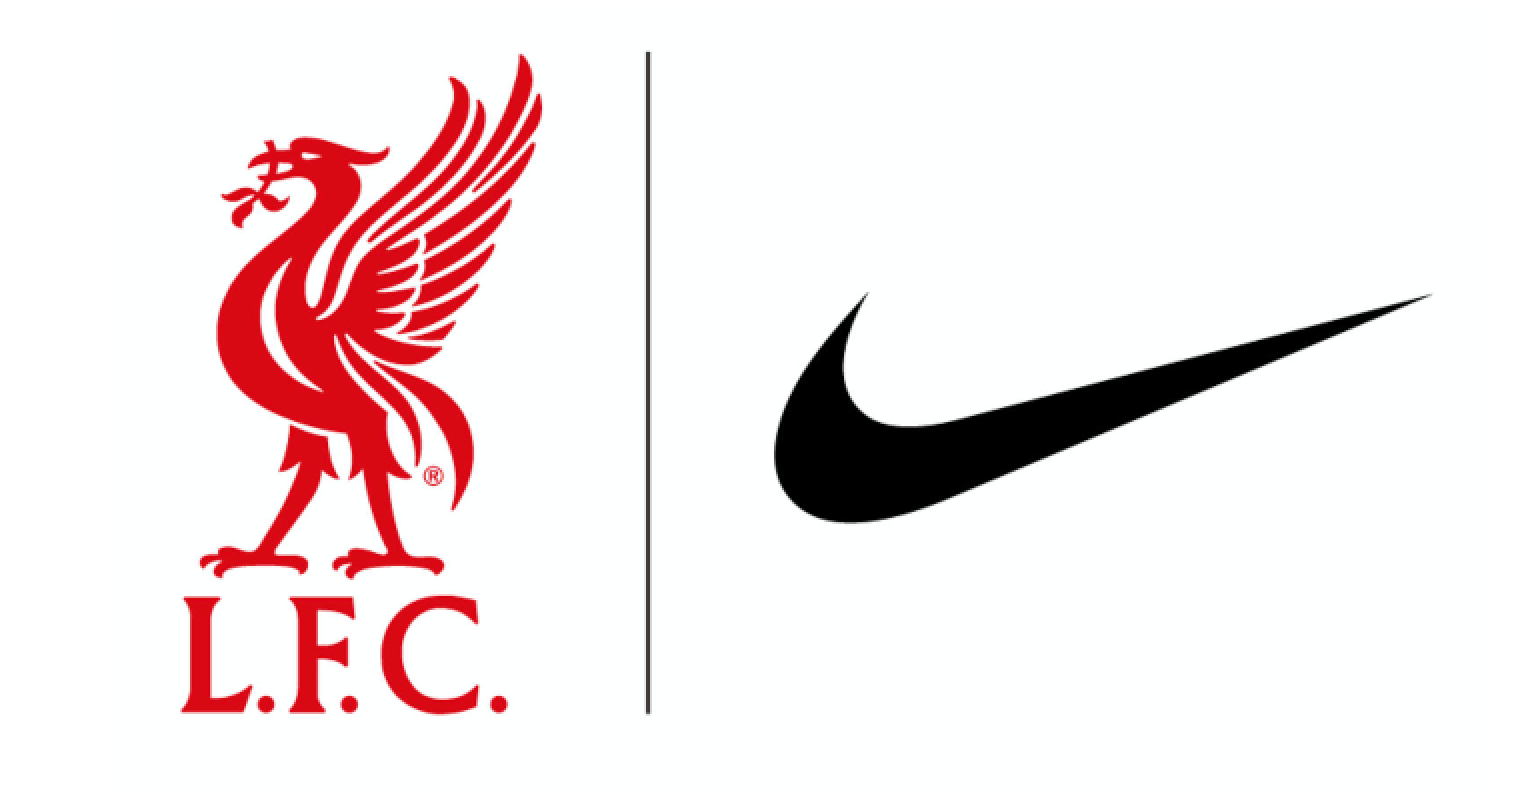 Liverpool Lfc Png Free Liverpool Lfc Png Transparent Images 135257 Pngio